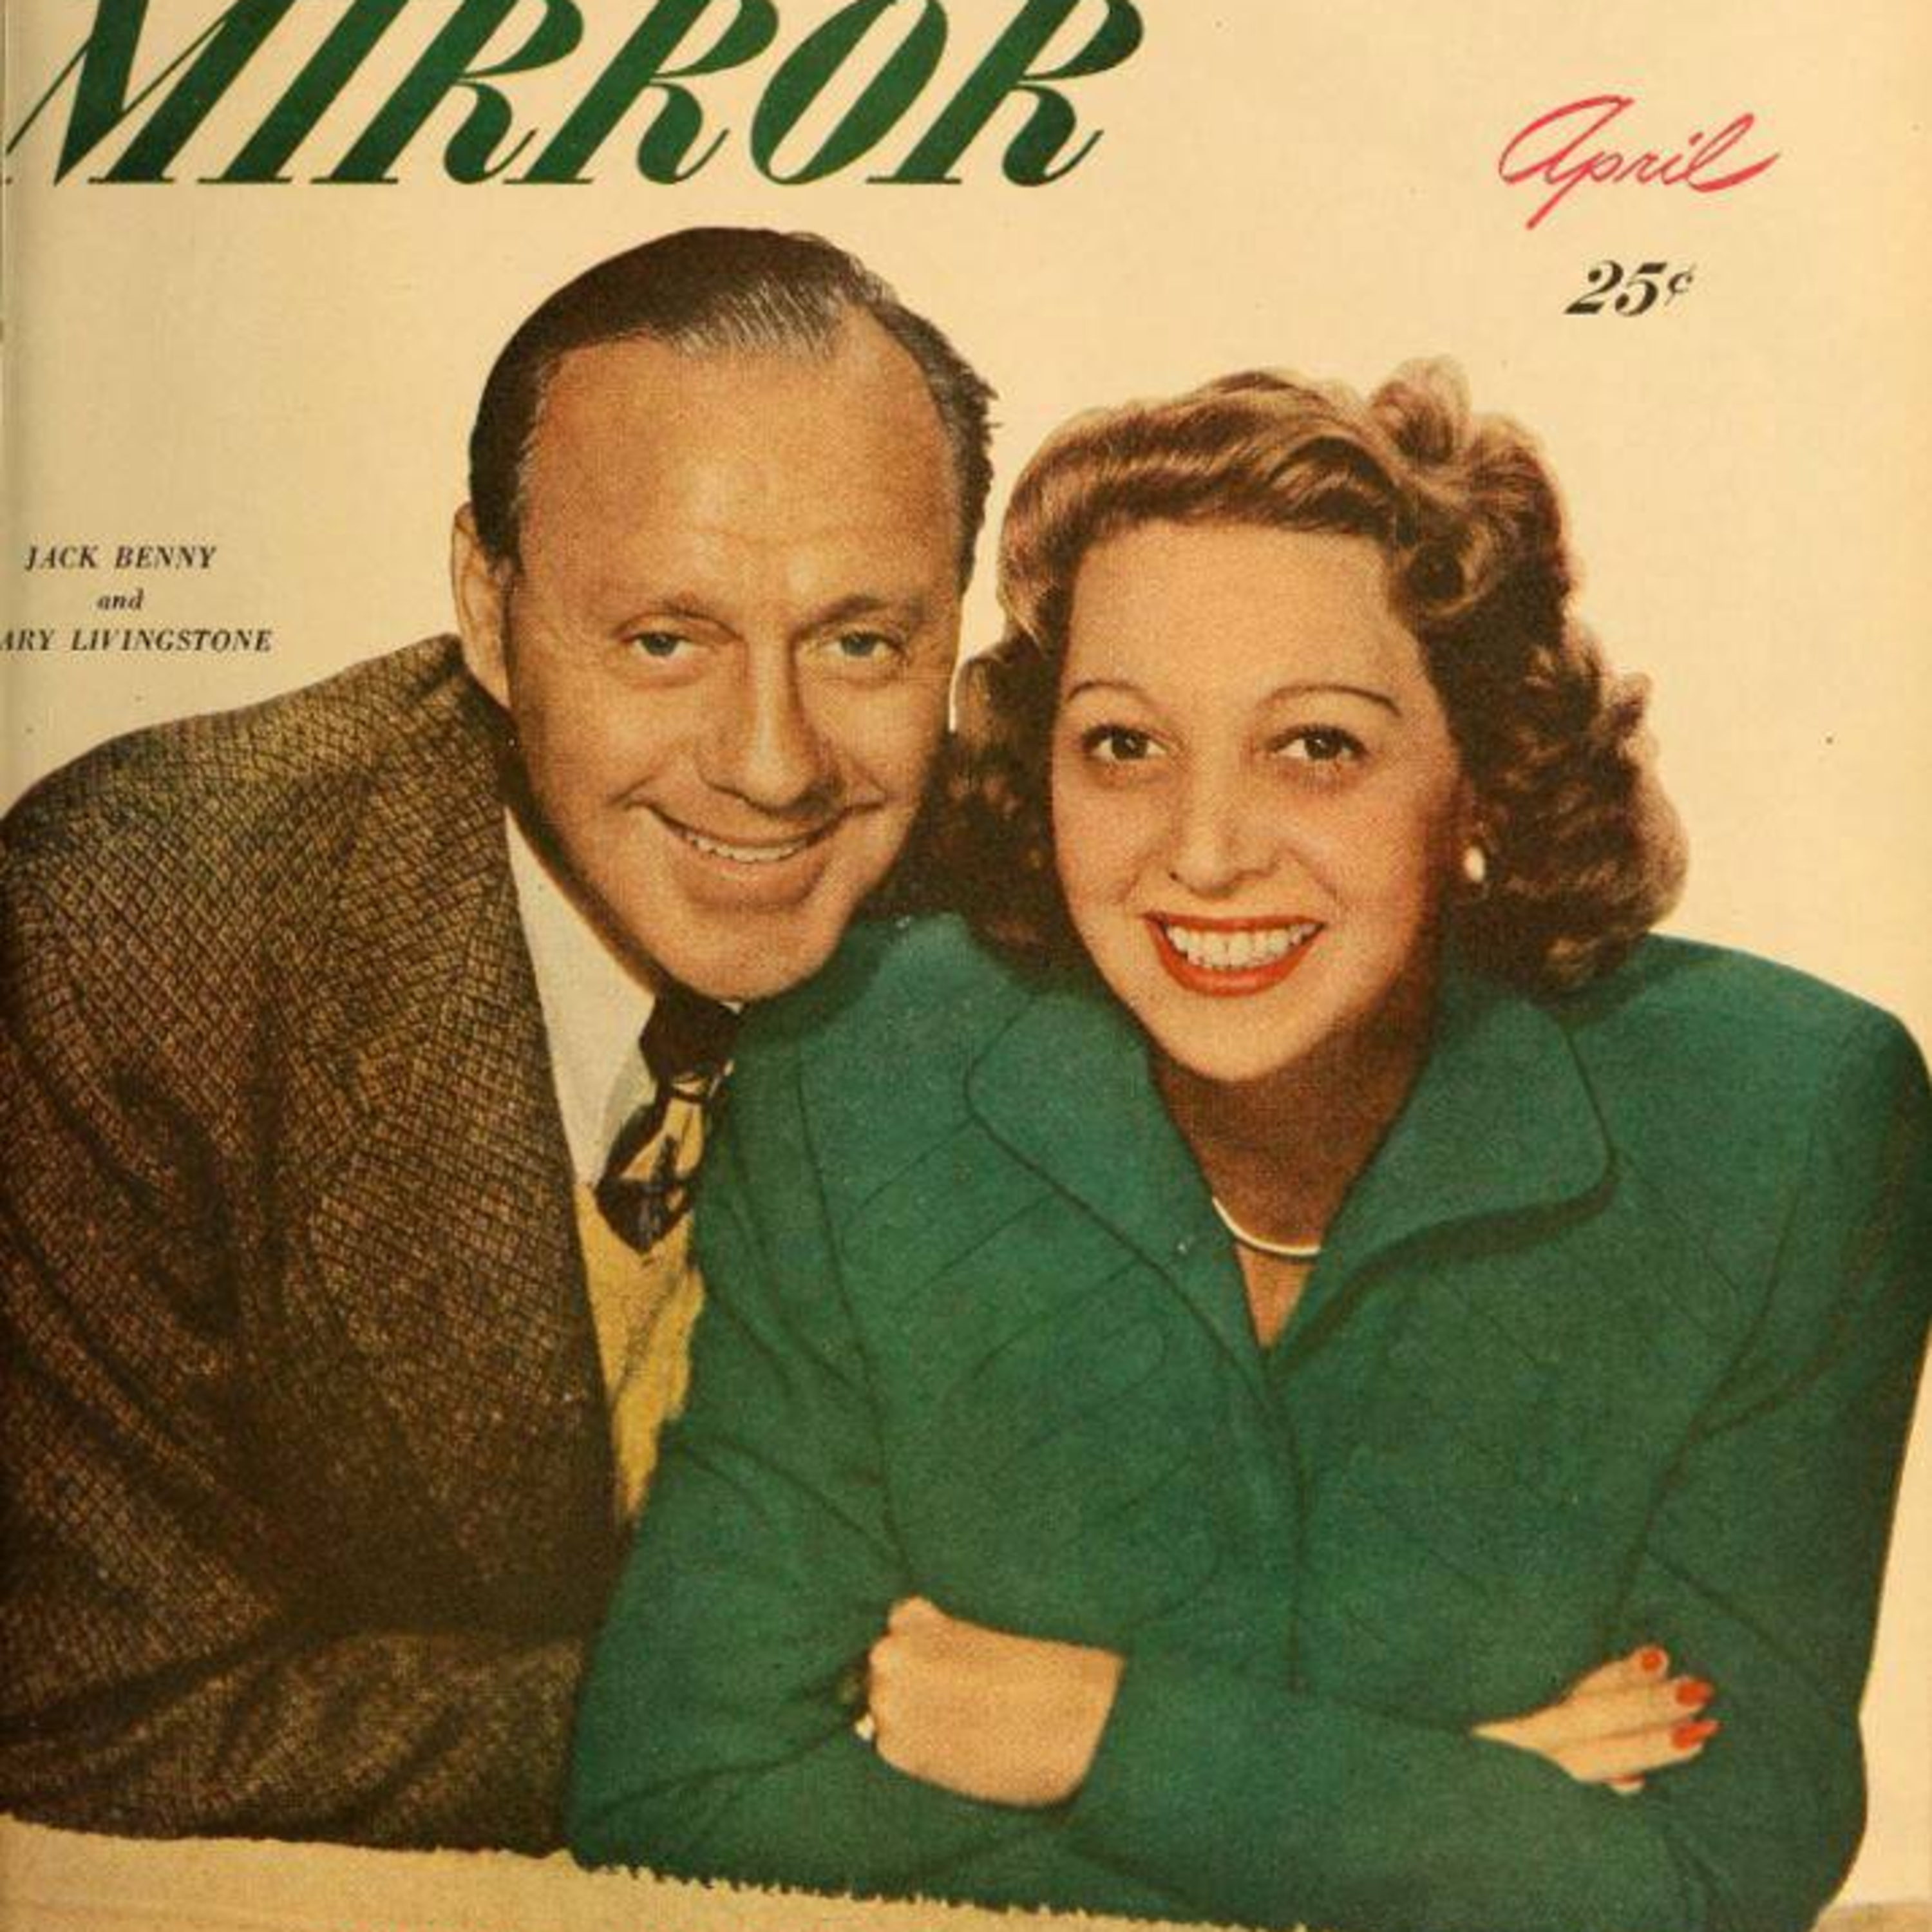 The Complete Jack Benny Podcast - All Jack's Shows 1932-1958 - My Life as a Floorwalker - Haunted House - Duel in the Graveyard